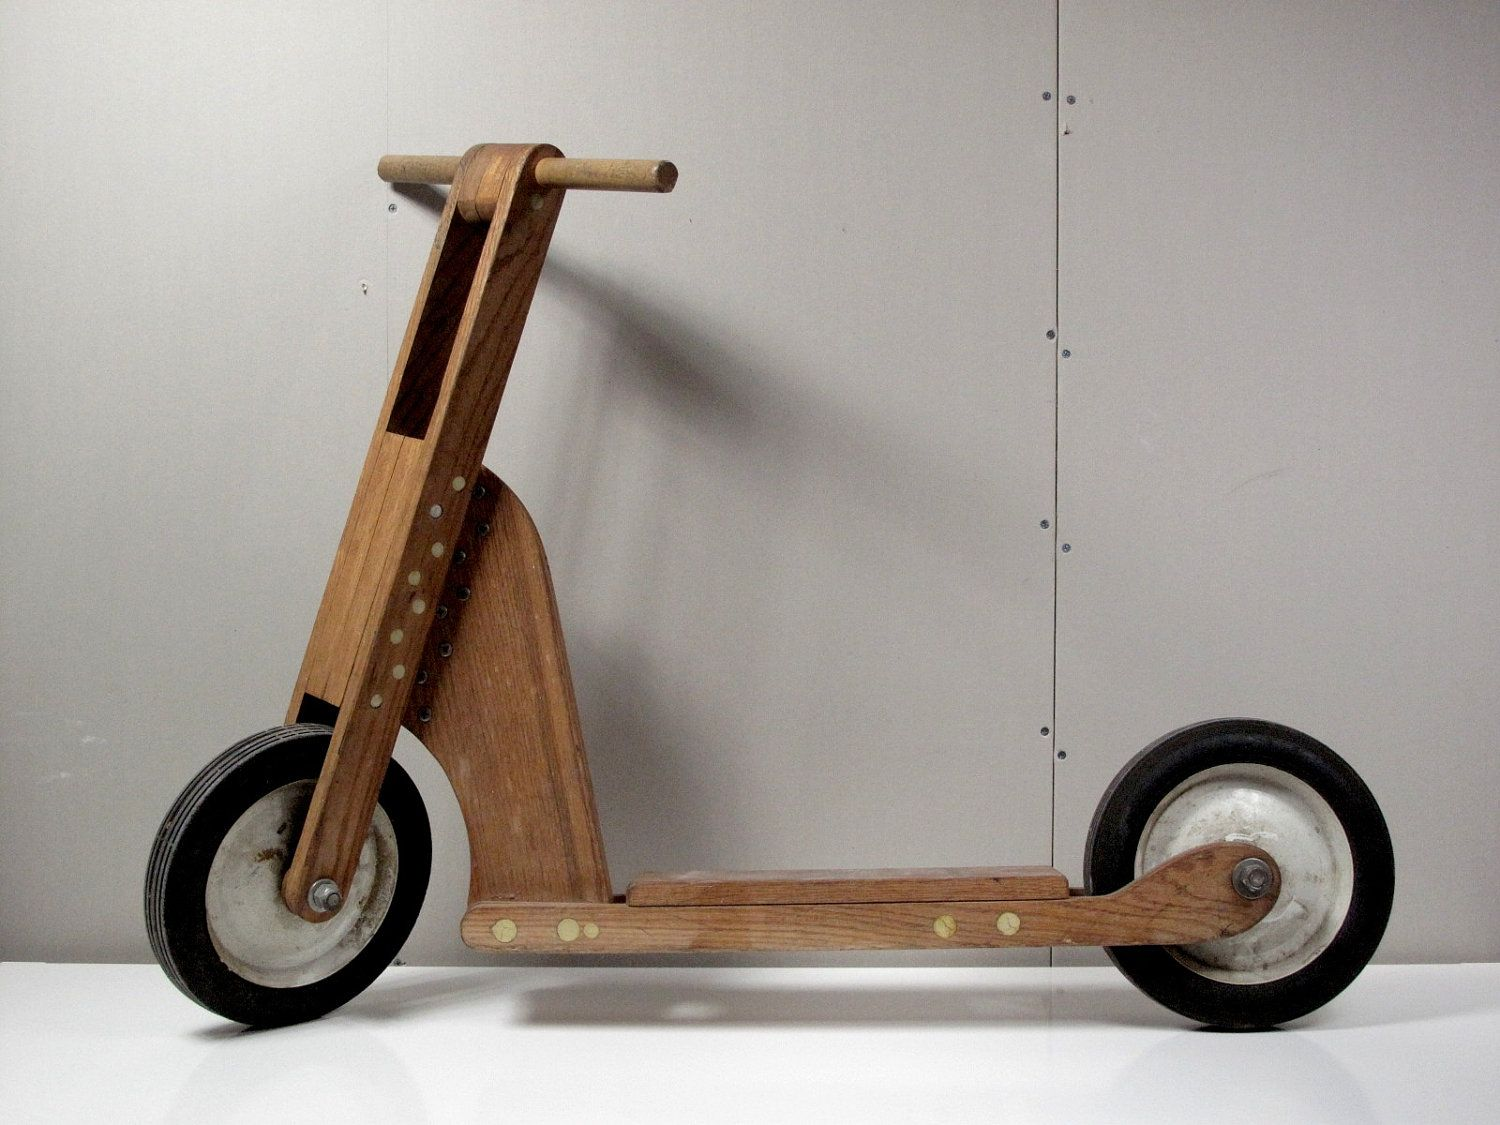 Vintage hand made wooden scooter diy popular mechanics for Toy plans